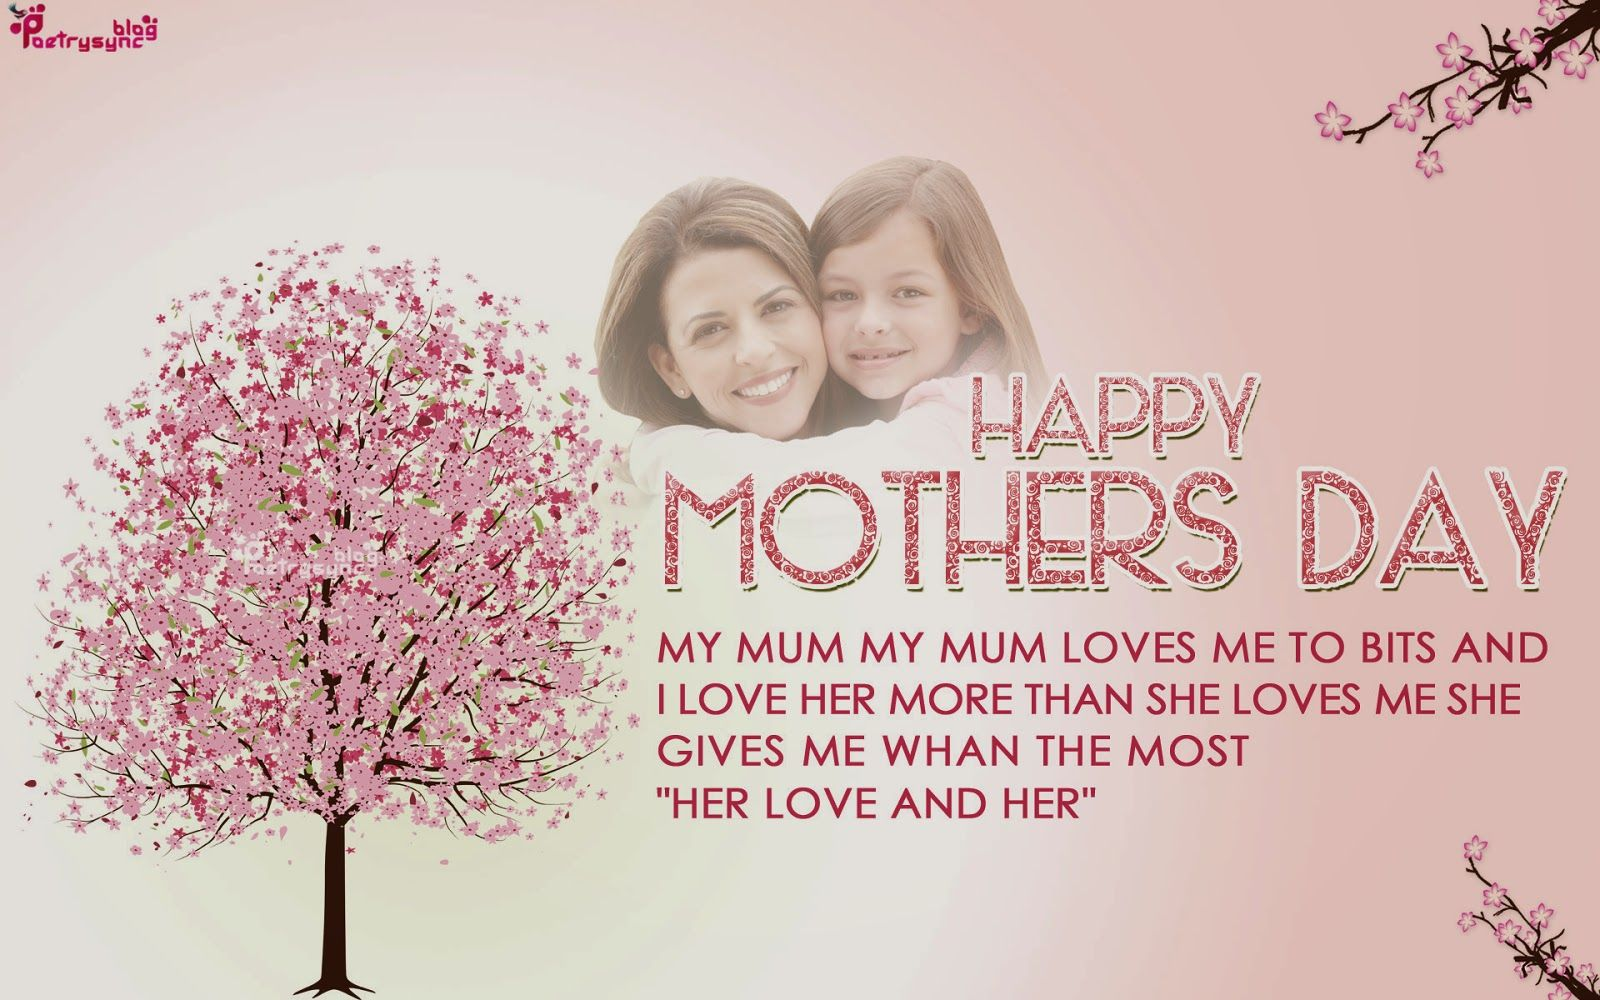 Poetry happy mothers day greetings wallpapers with messages poetry happy mothers day greetings wallpapers with messages kristyandbryce Images